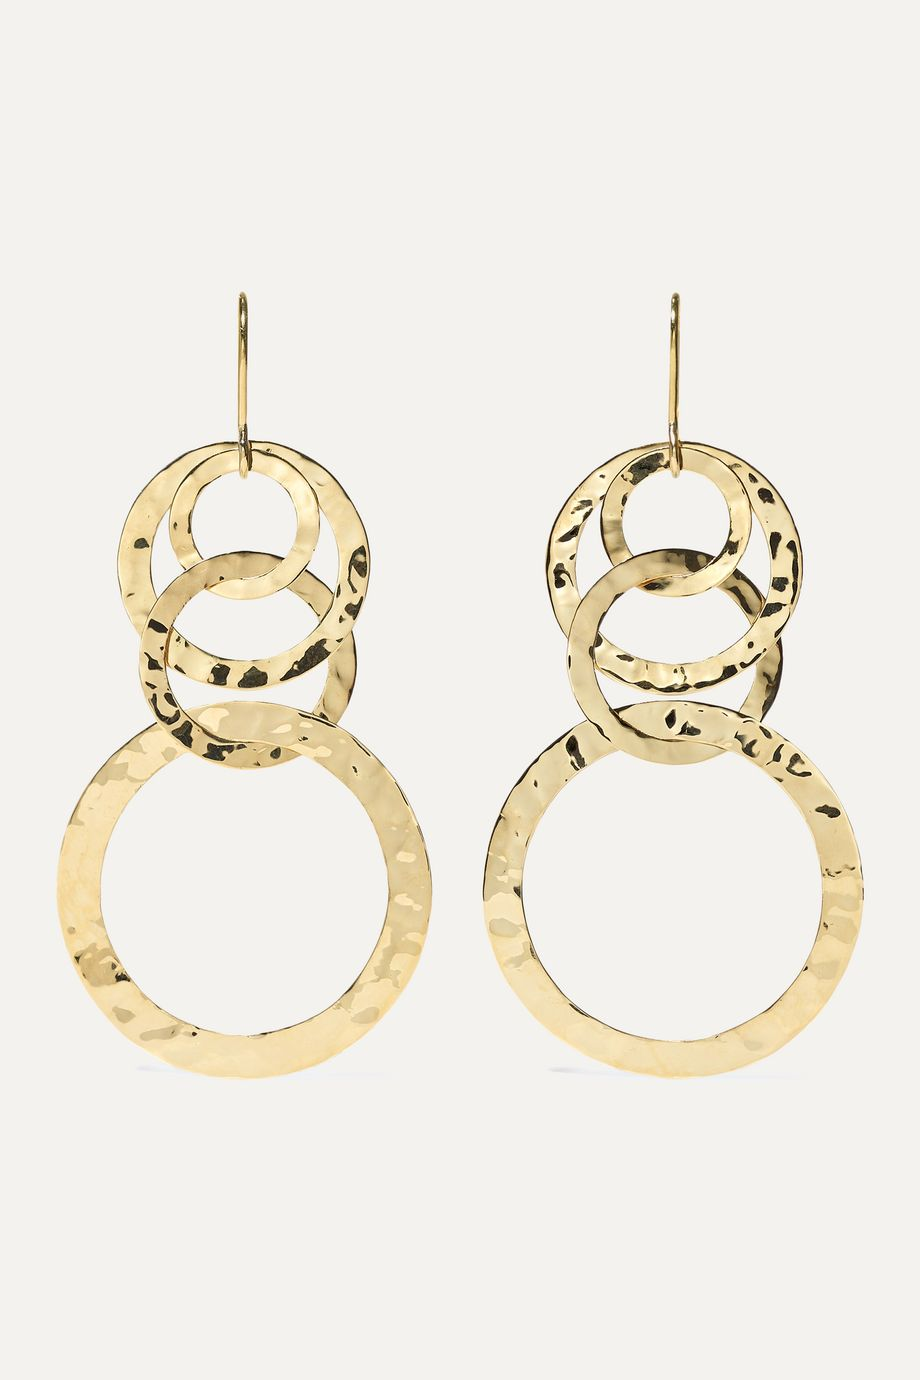 Ippolita Classico 18-karat gold earrings